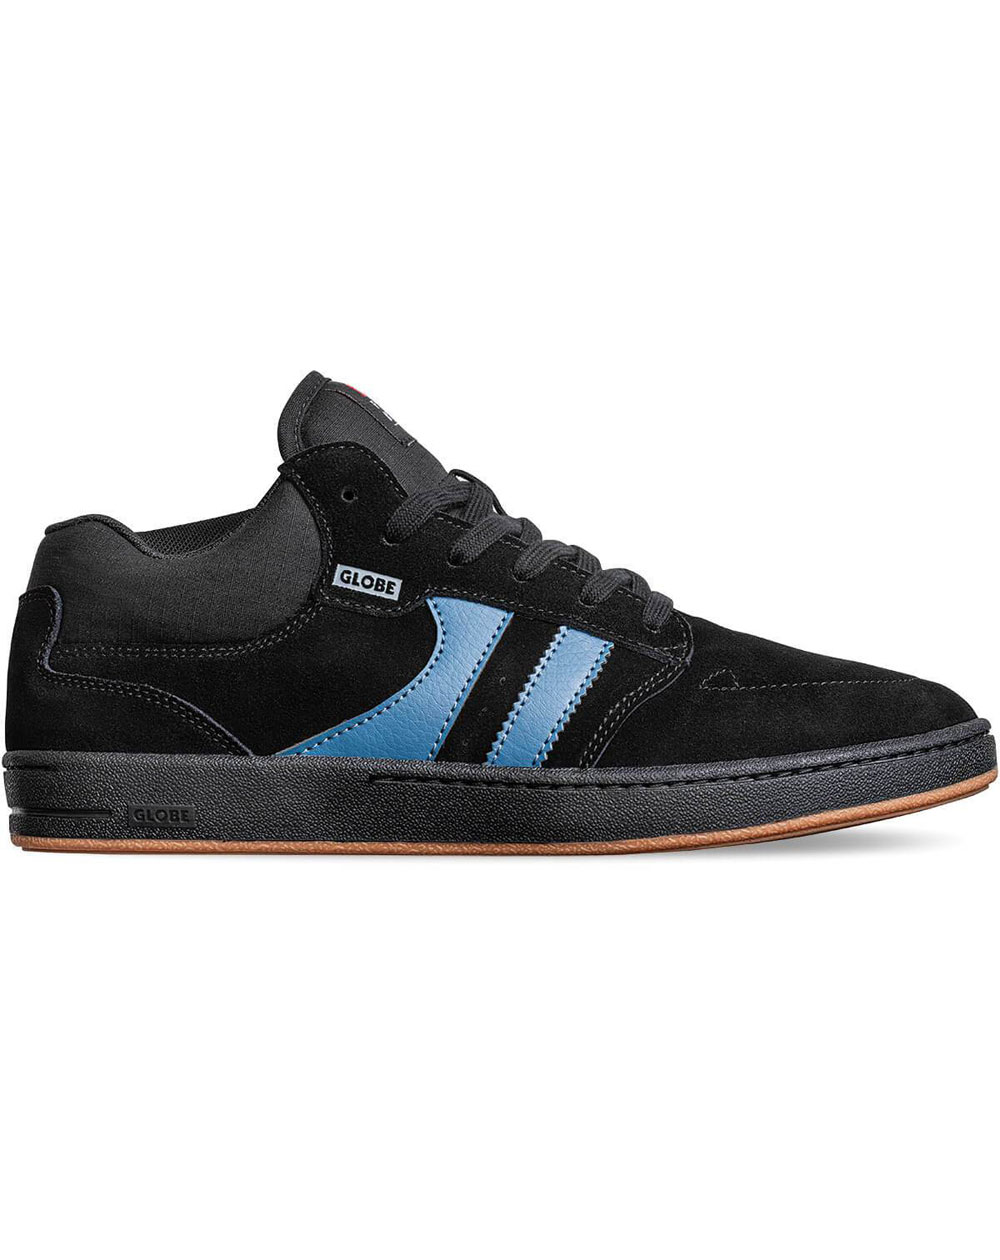 Globe Men's Sneakers Shoes Octave Mid RM Black/Grey/Blue